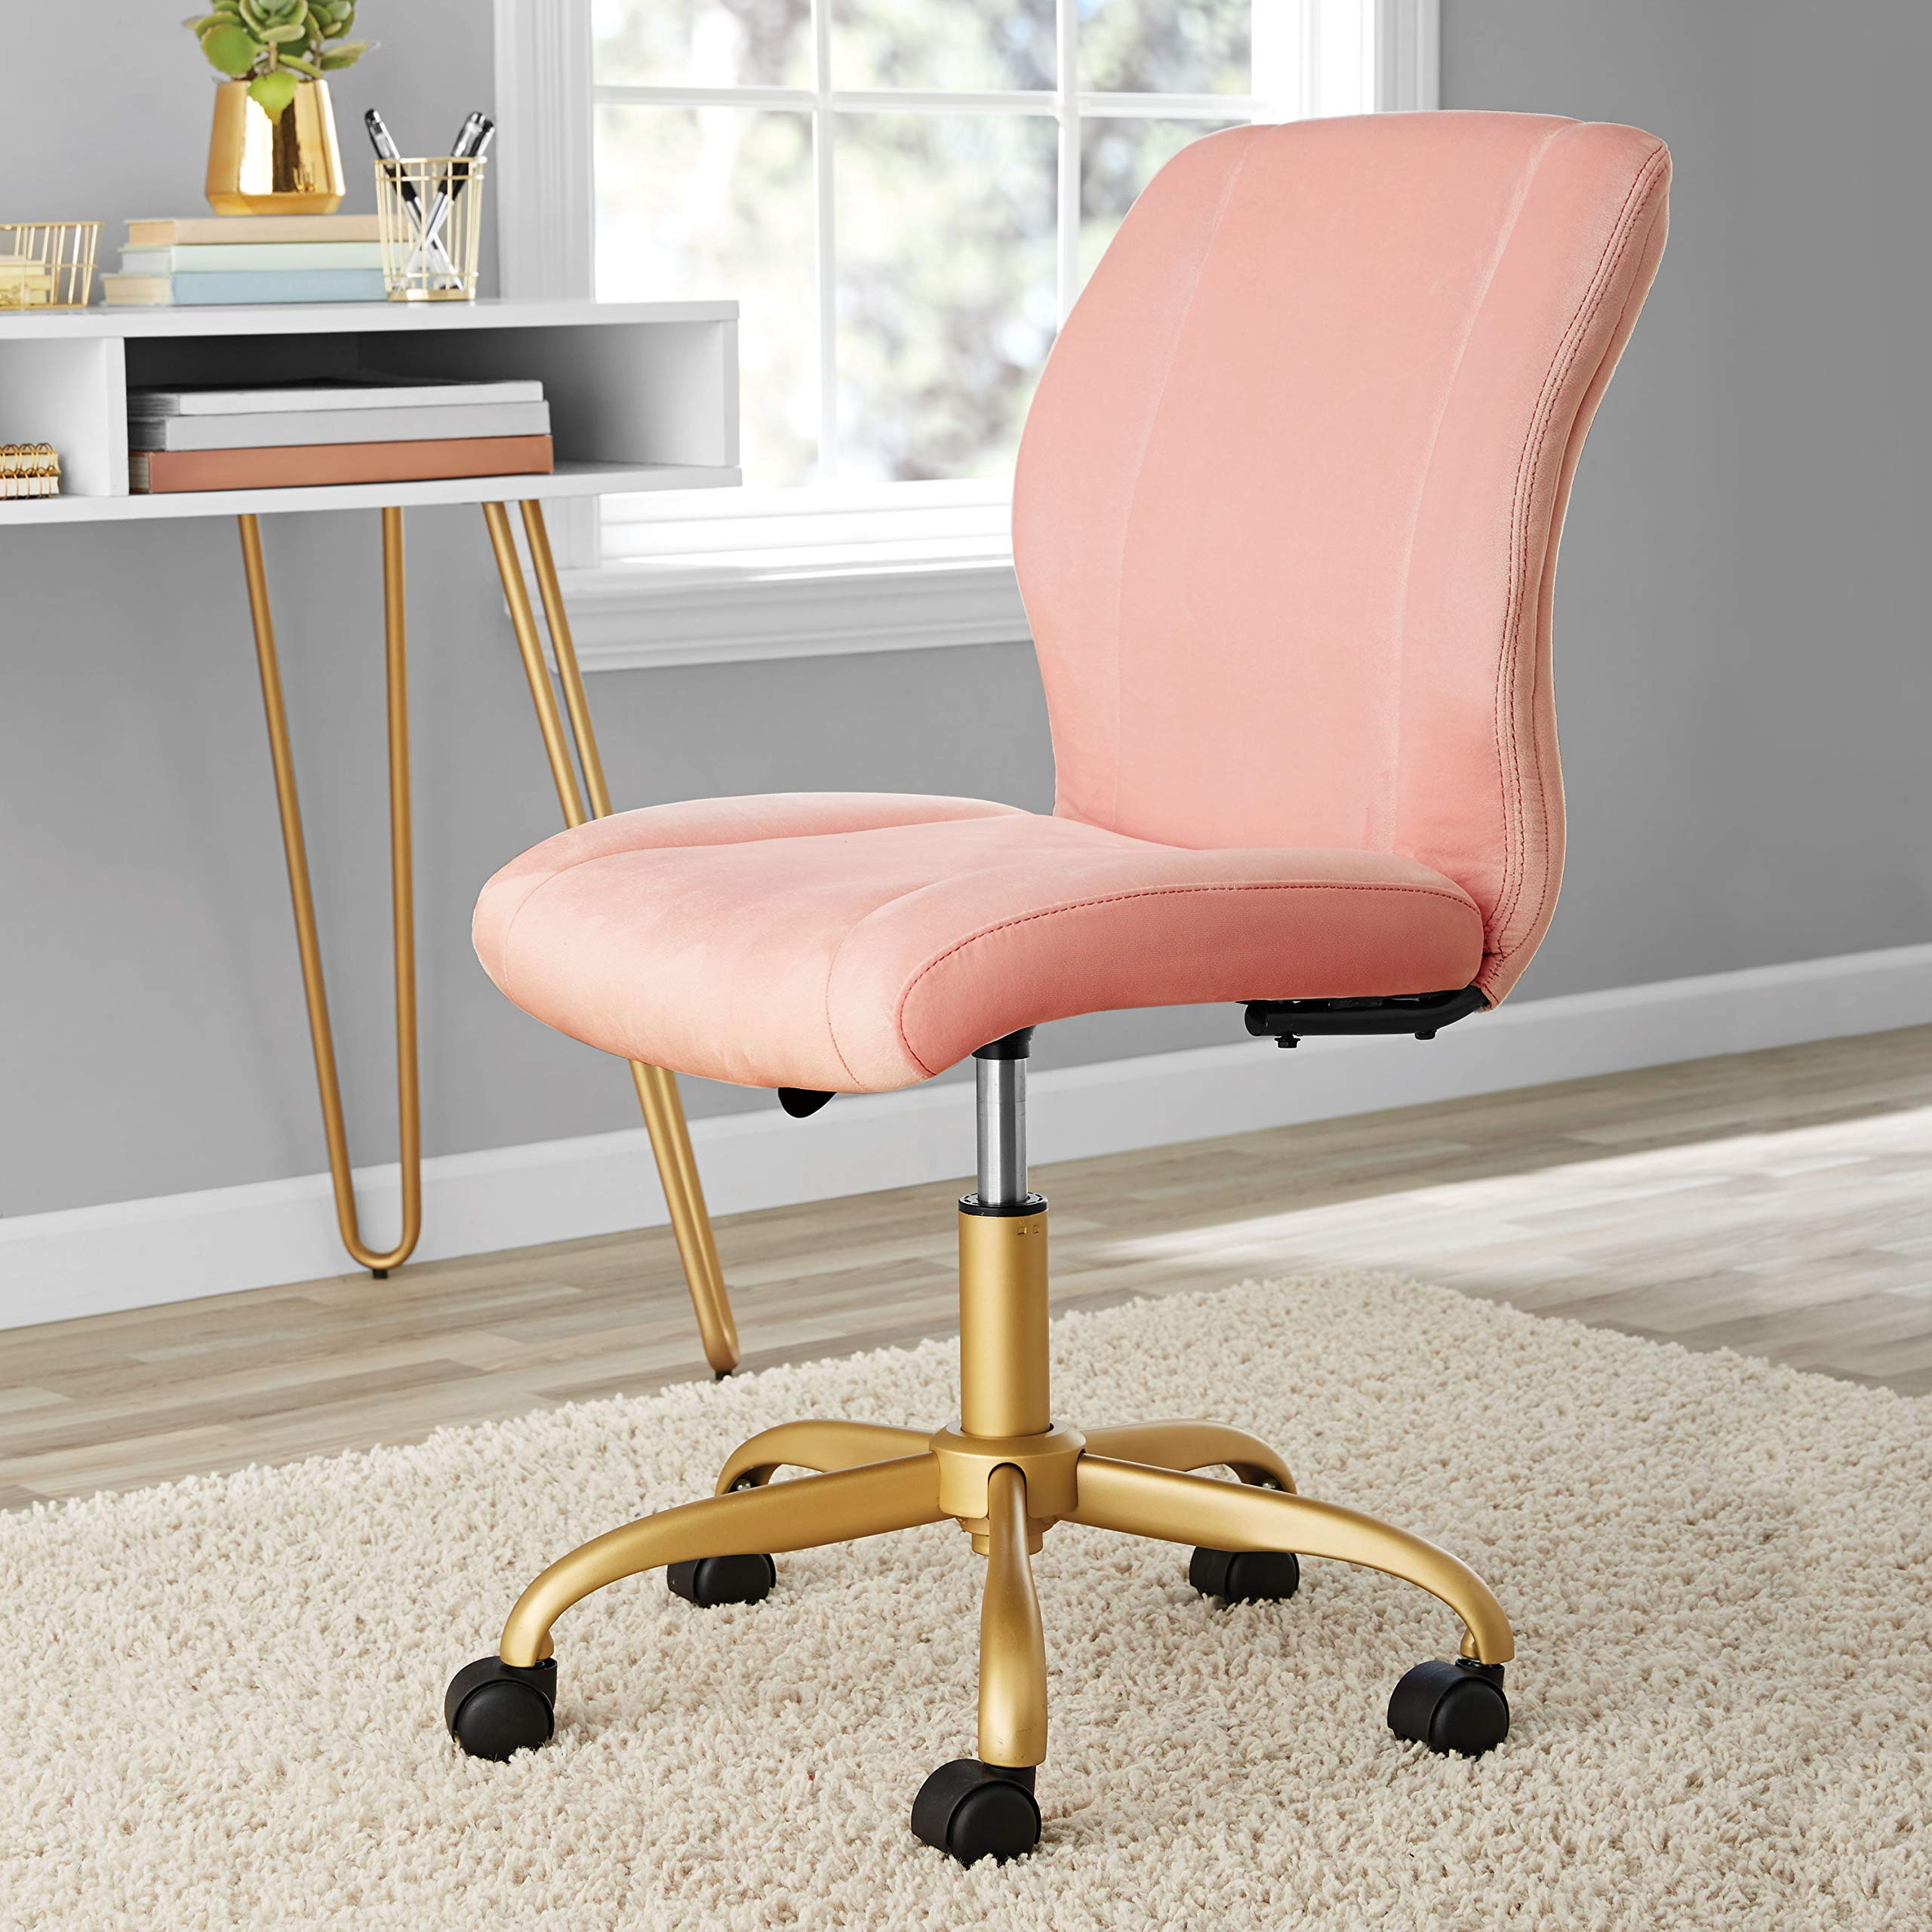 Make Your Room or Office a Fashionable,Yet Functional Space with Chic,Elegant,Durable and Comfortable Plush Velvet Office Chair,Pearl Blush Upholstery by MST